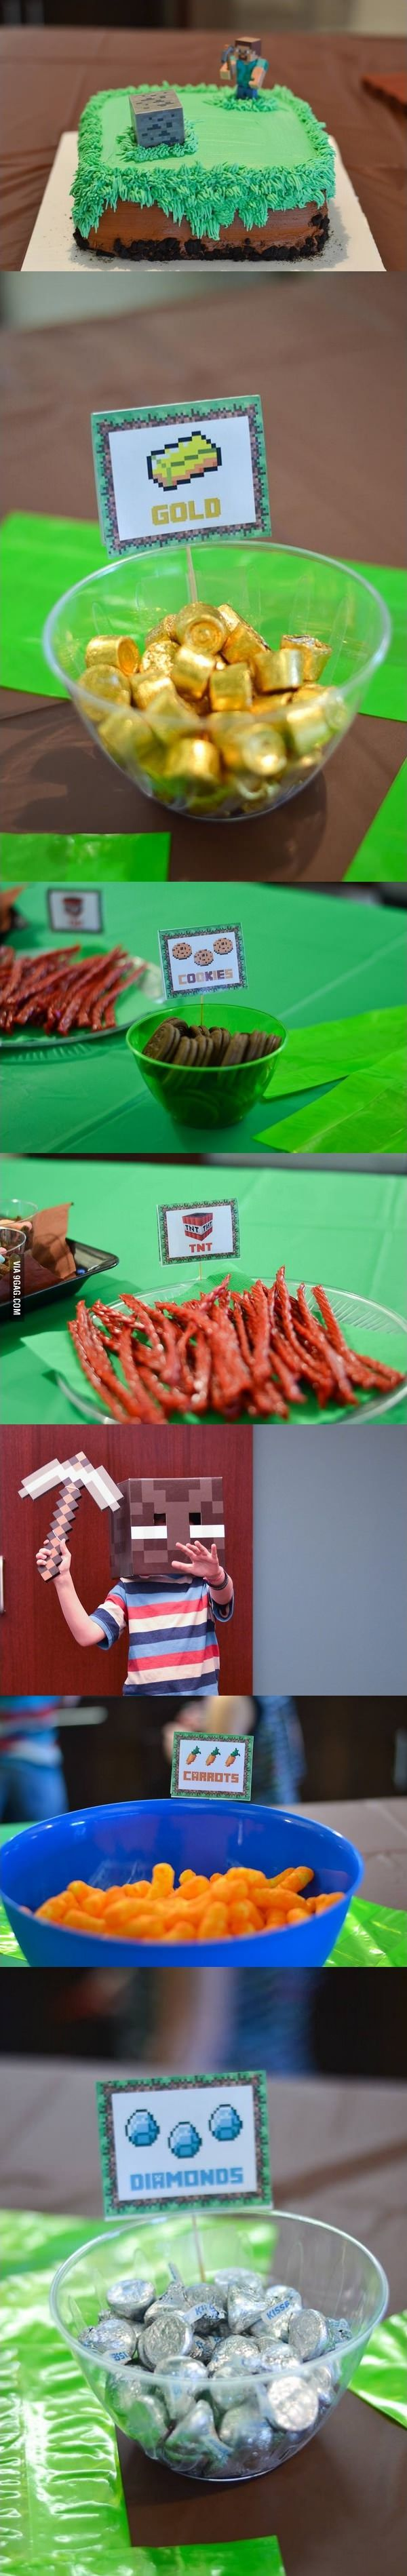 Minecraft themed Birthday Party for a 10 years old